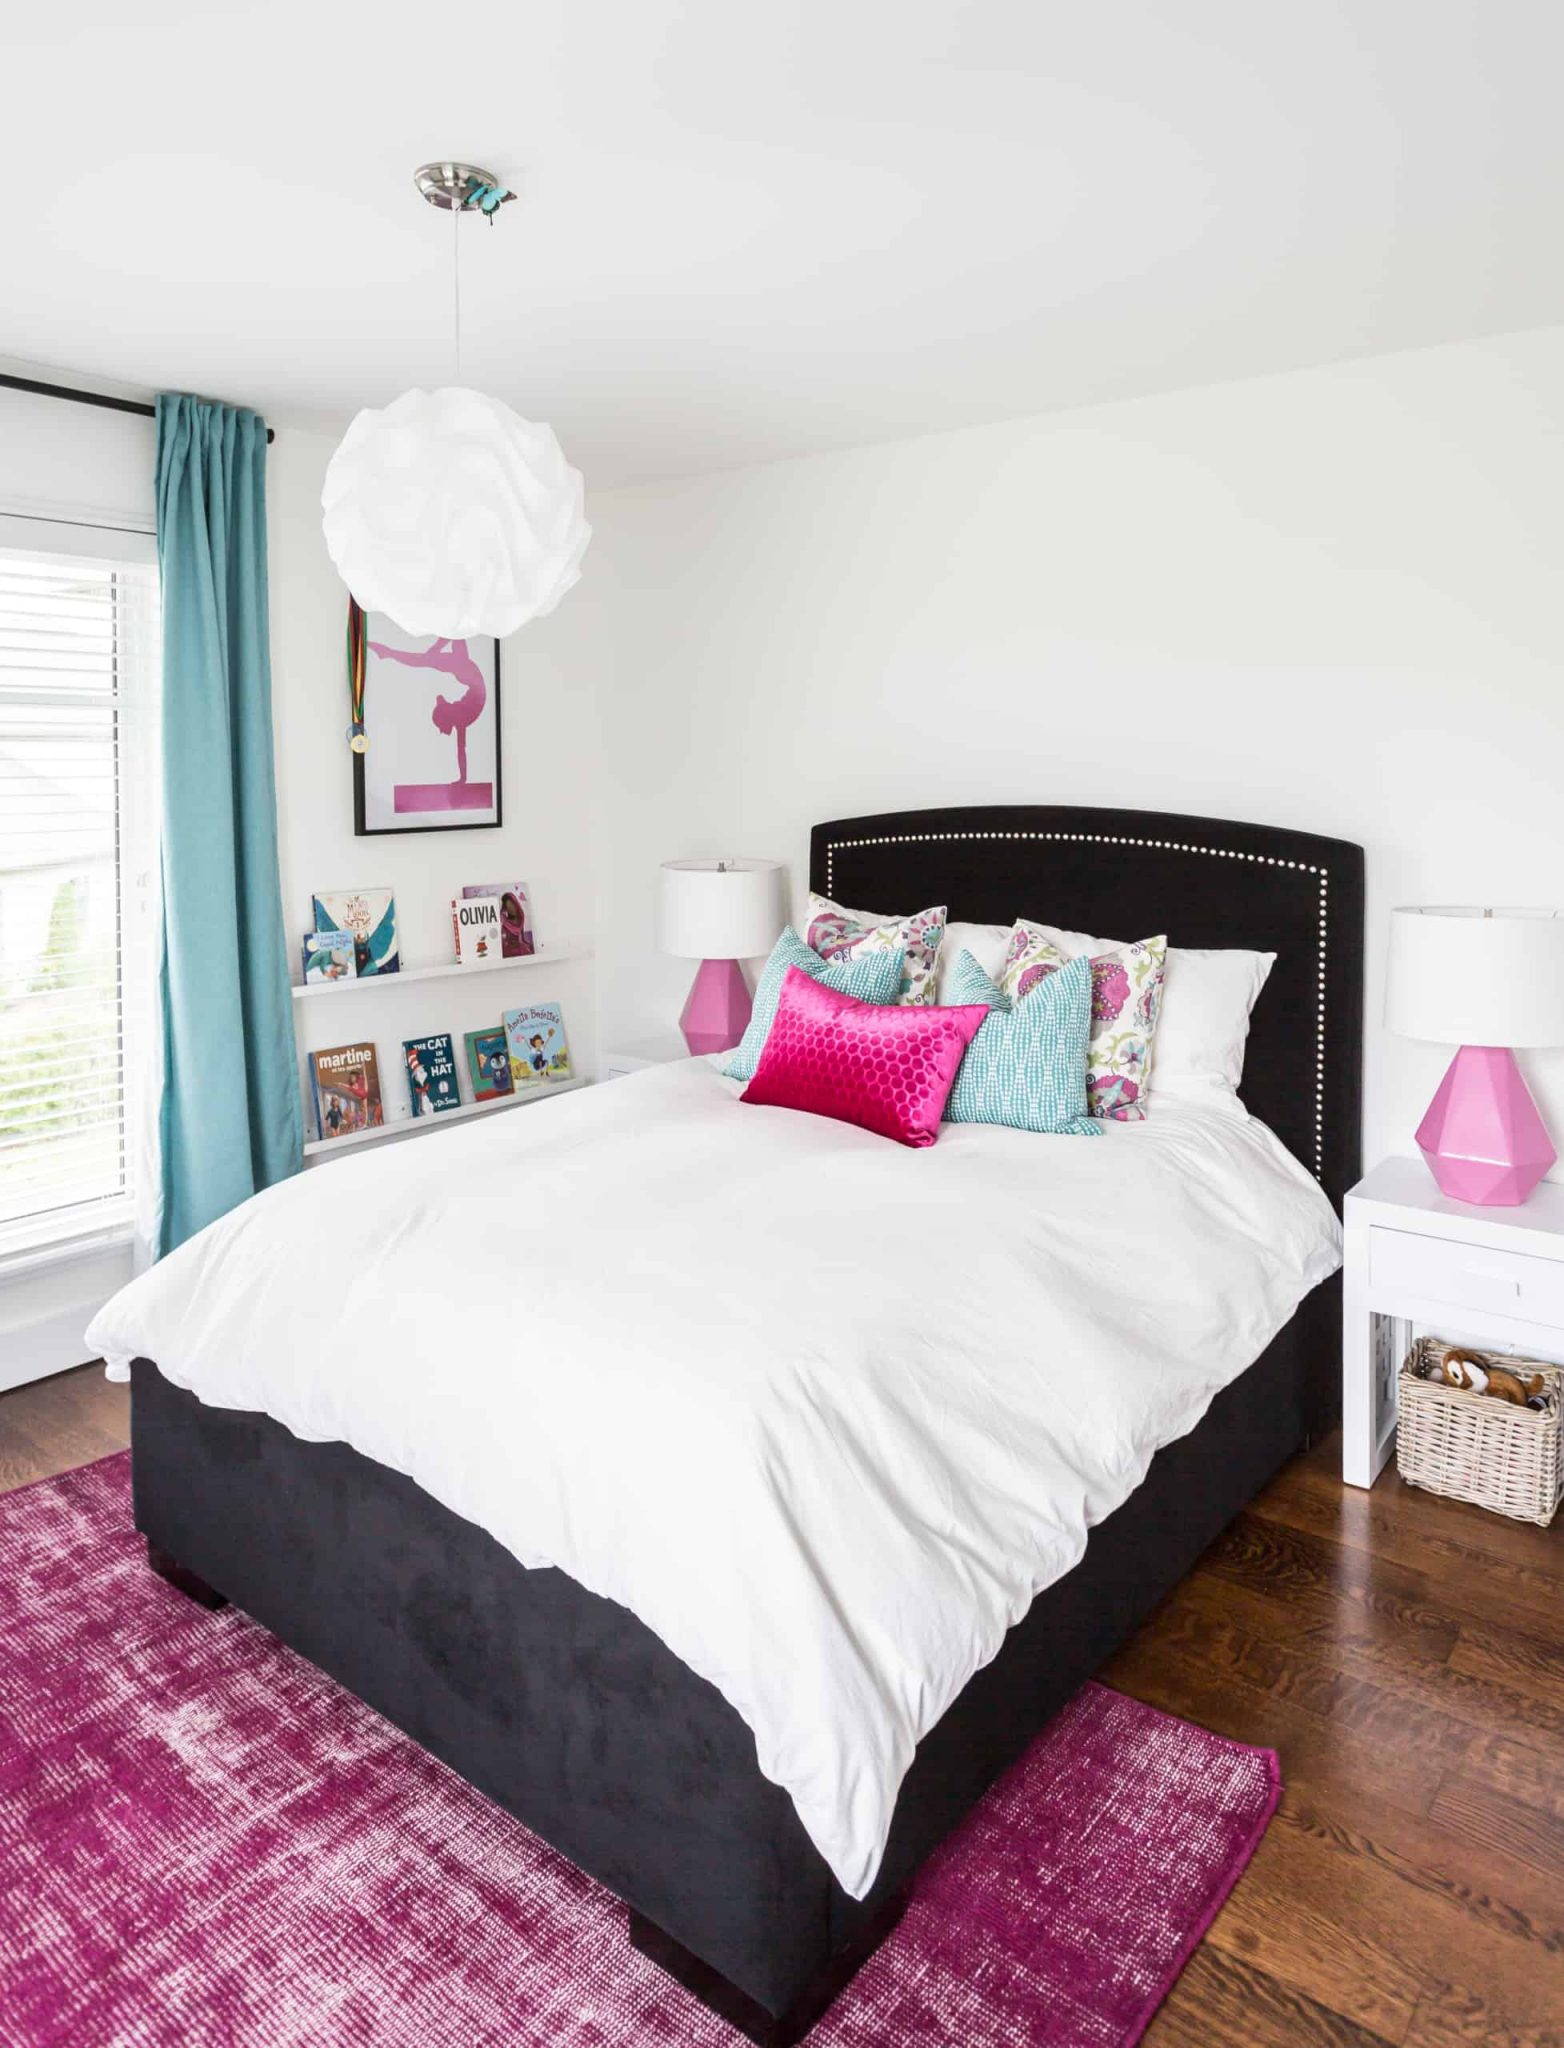 Black bed with colorful pillows and white blankets on it